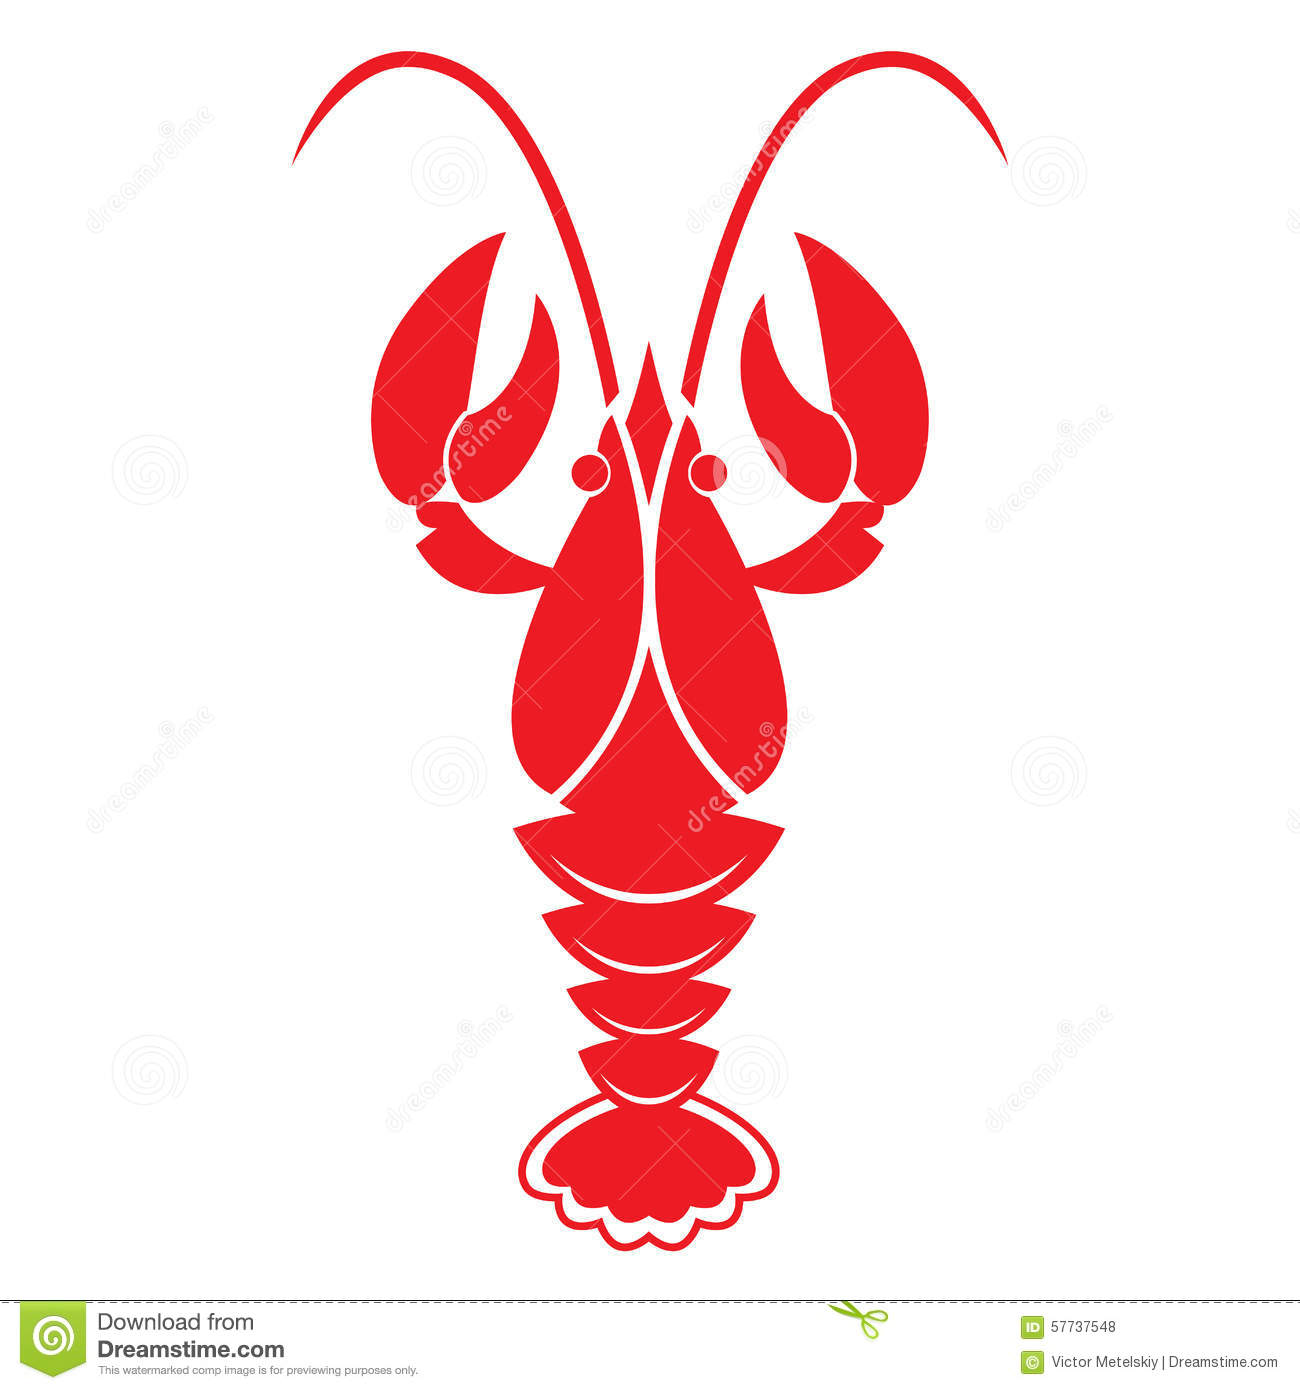 hight resolution of crawfish background stock illustrations 754 crawfish background stock illustrations vectors clipart dreamstime